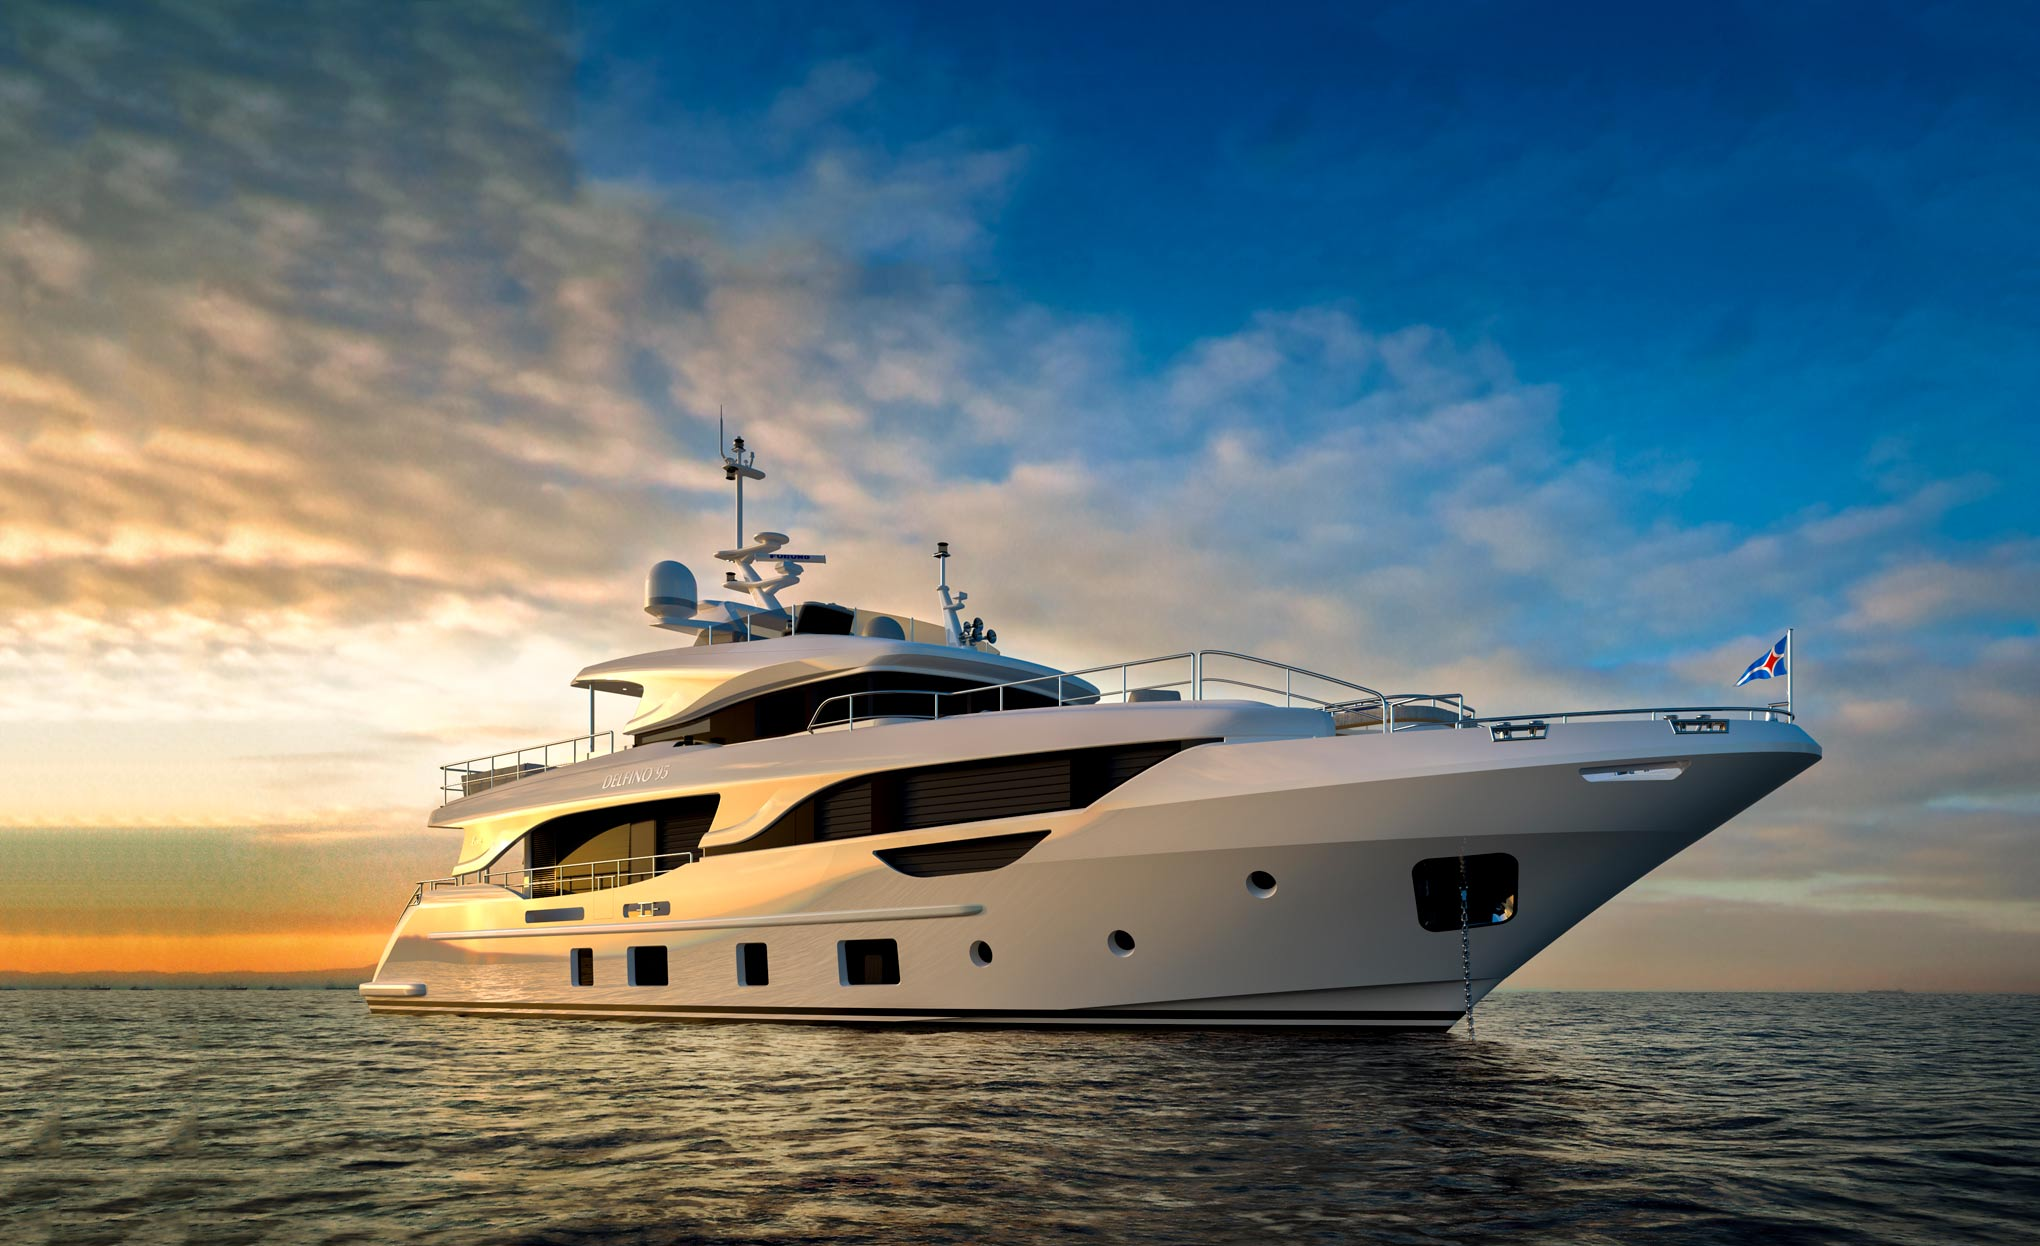 Used Benetti Yachts for Sale - View Yachts - SYS Yacht Sales